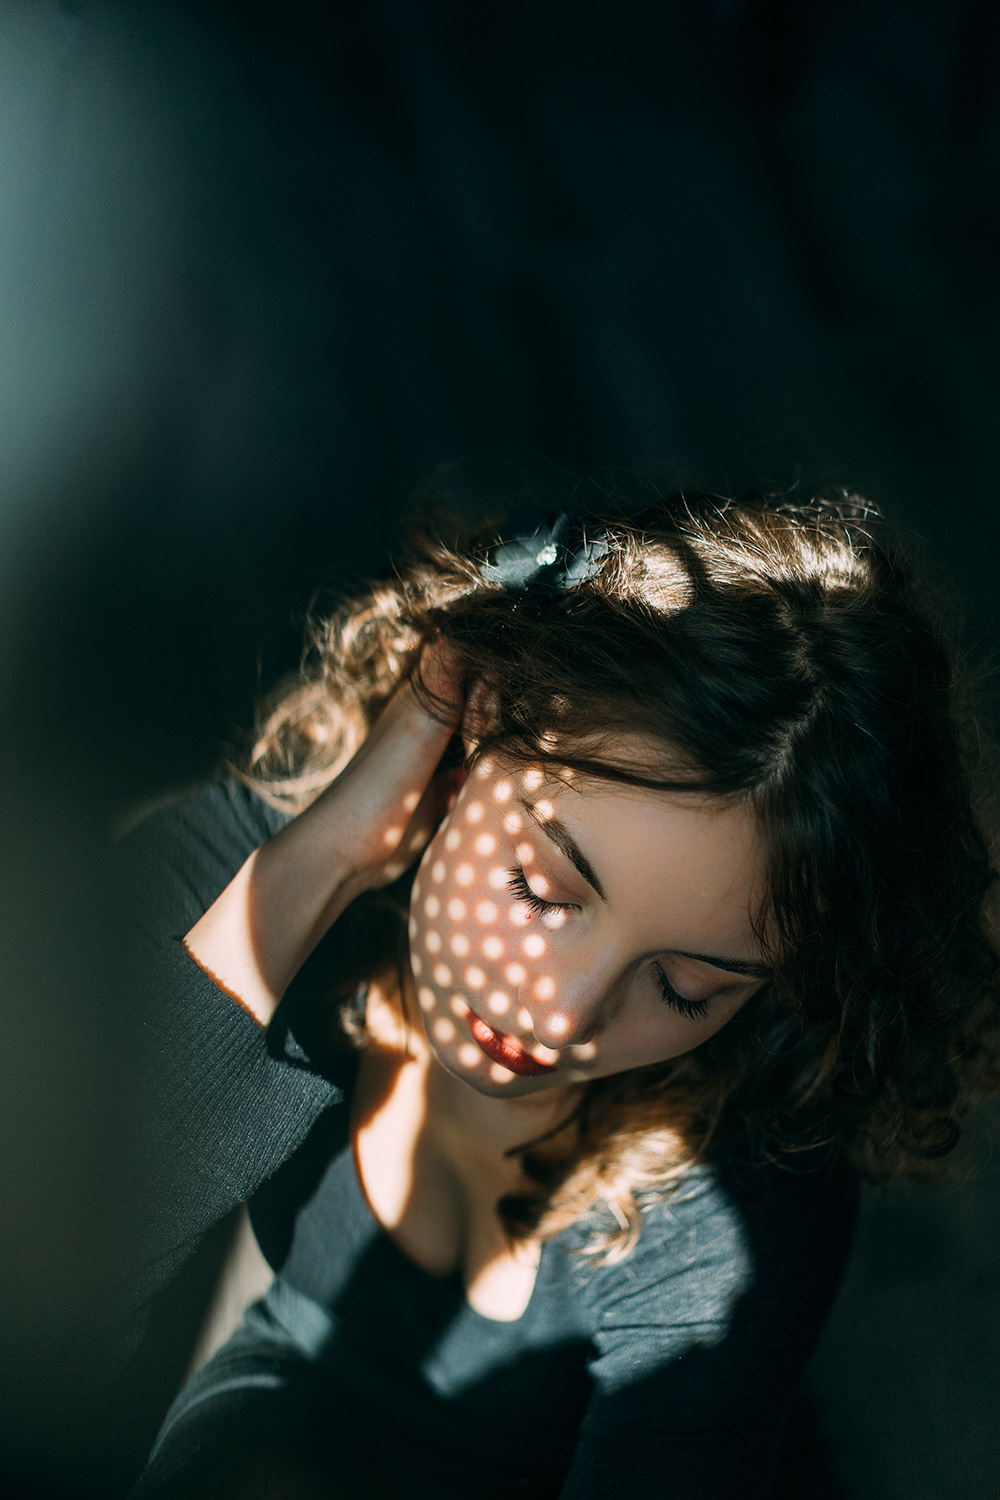 DIY photo idea – photograph of woman with interesting lighting